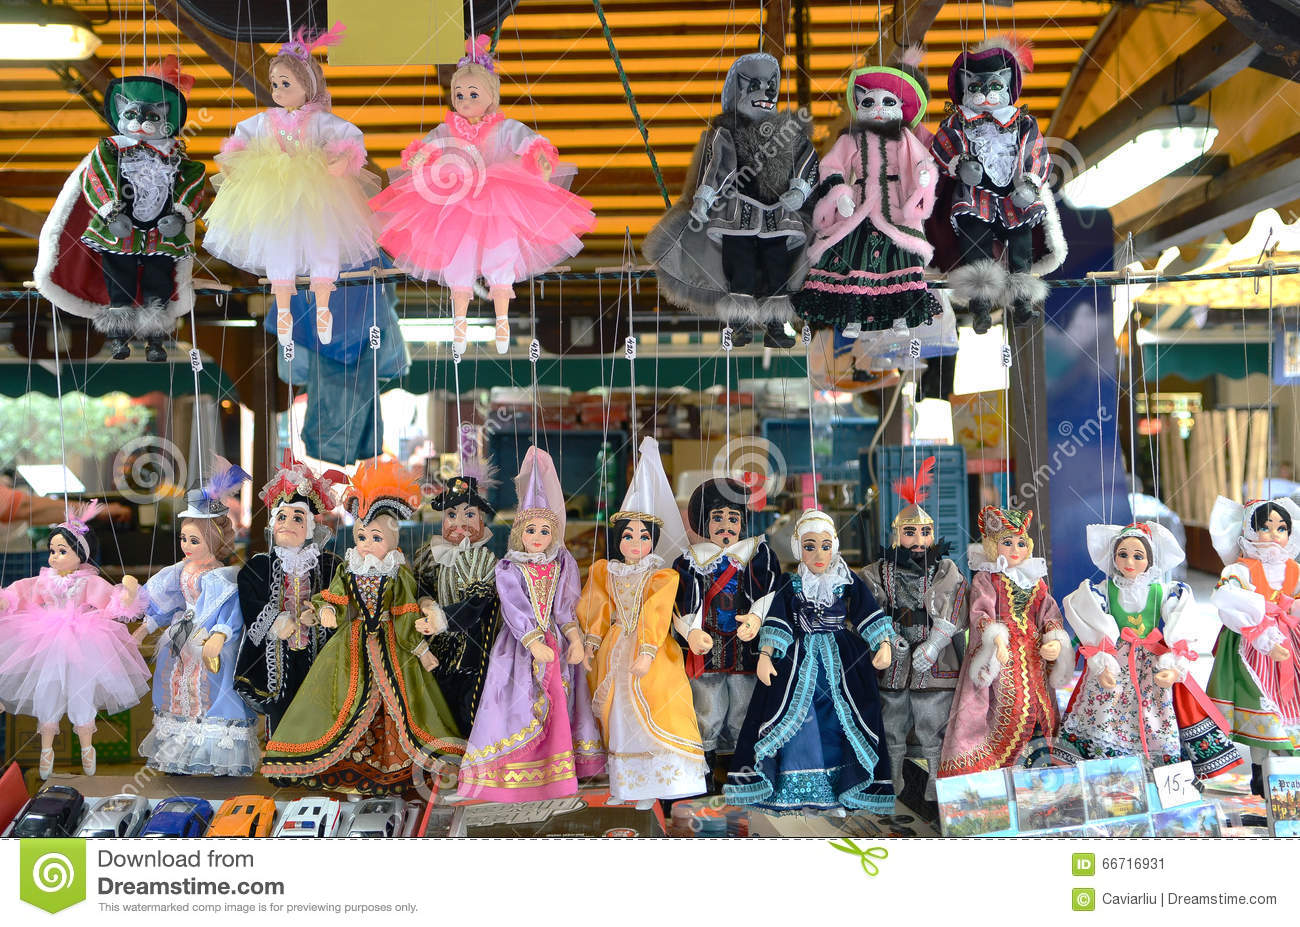 3 together with Bunraku Puppet Robots Resurrected Picsvideo as well 89730 What Did You Find Buy Today 967 Print moreover Attic furthermore Jazminenava21 wordpress. on old scary doll